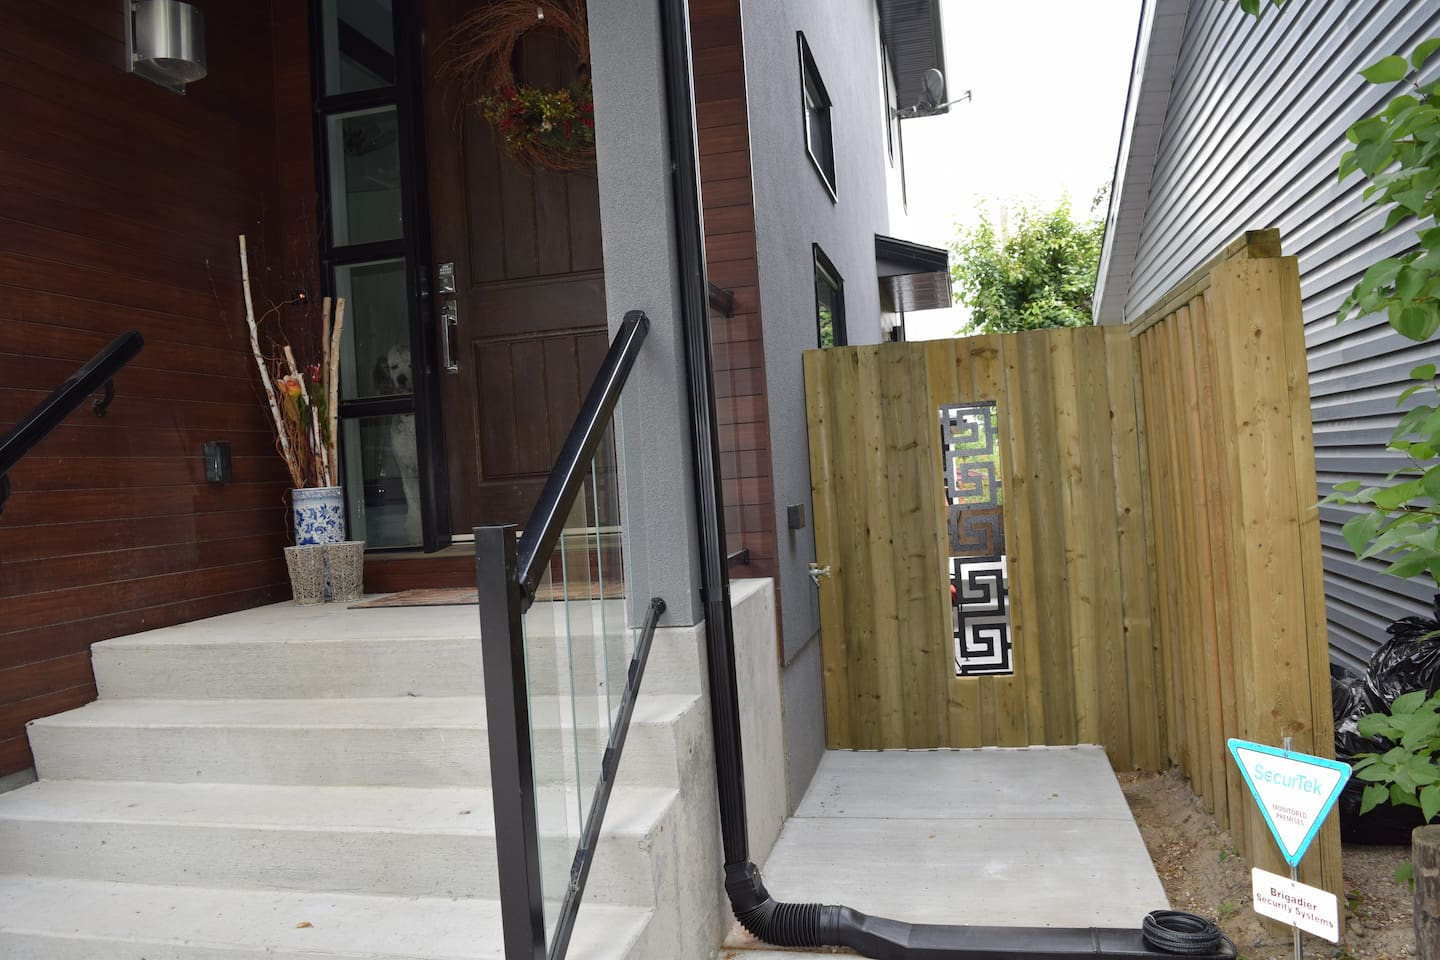 Private side entrance to suite.